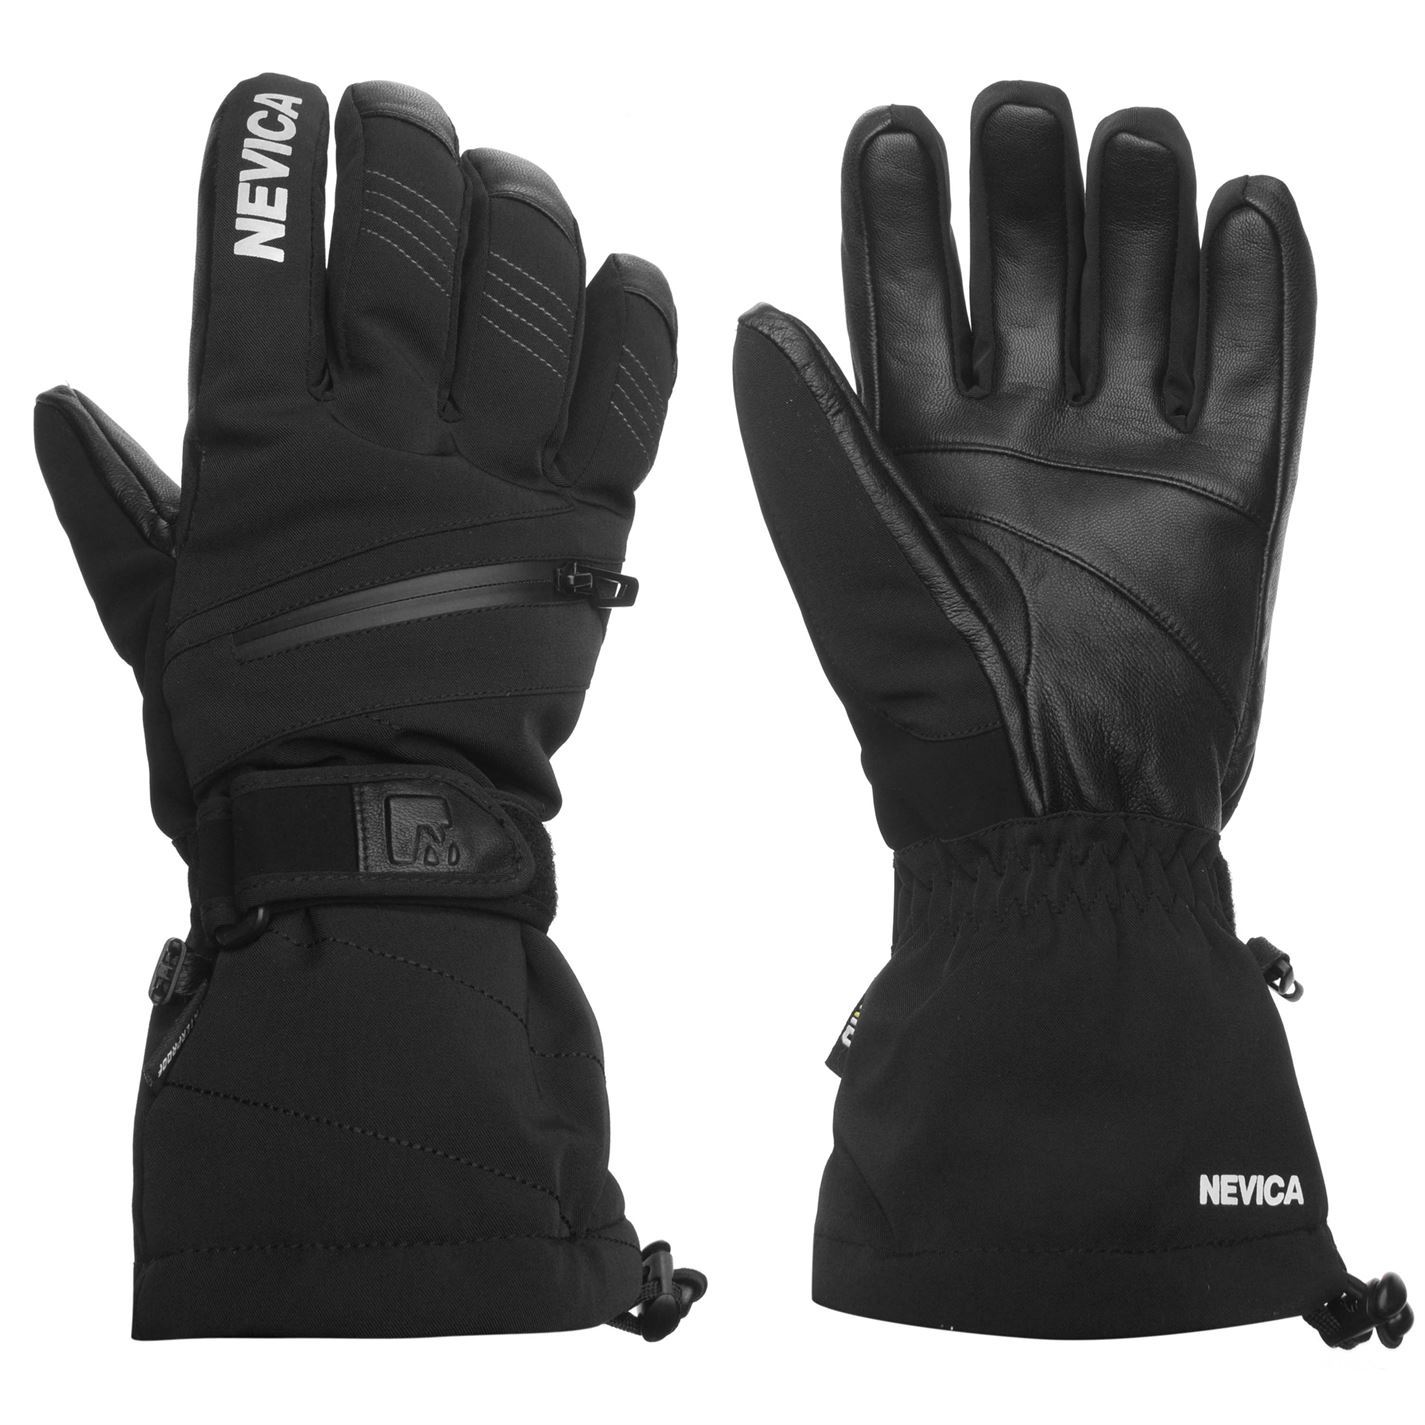 f7f69209e3 Nevica Mens Vail Ski Gloves Waterproof Windproof Breathable Zip ...